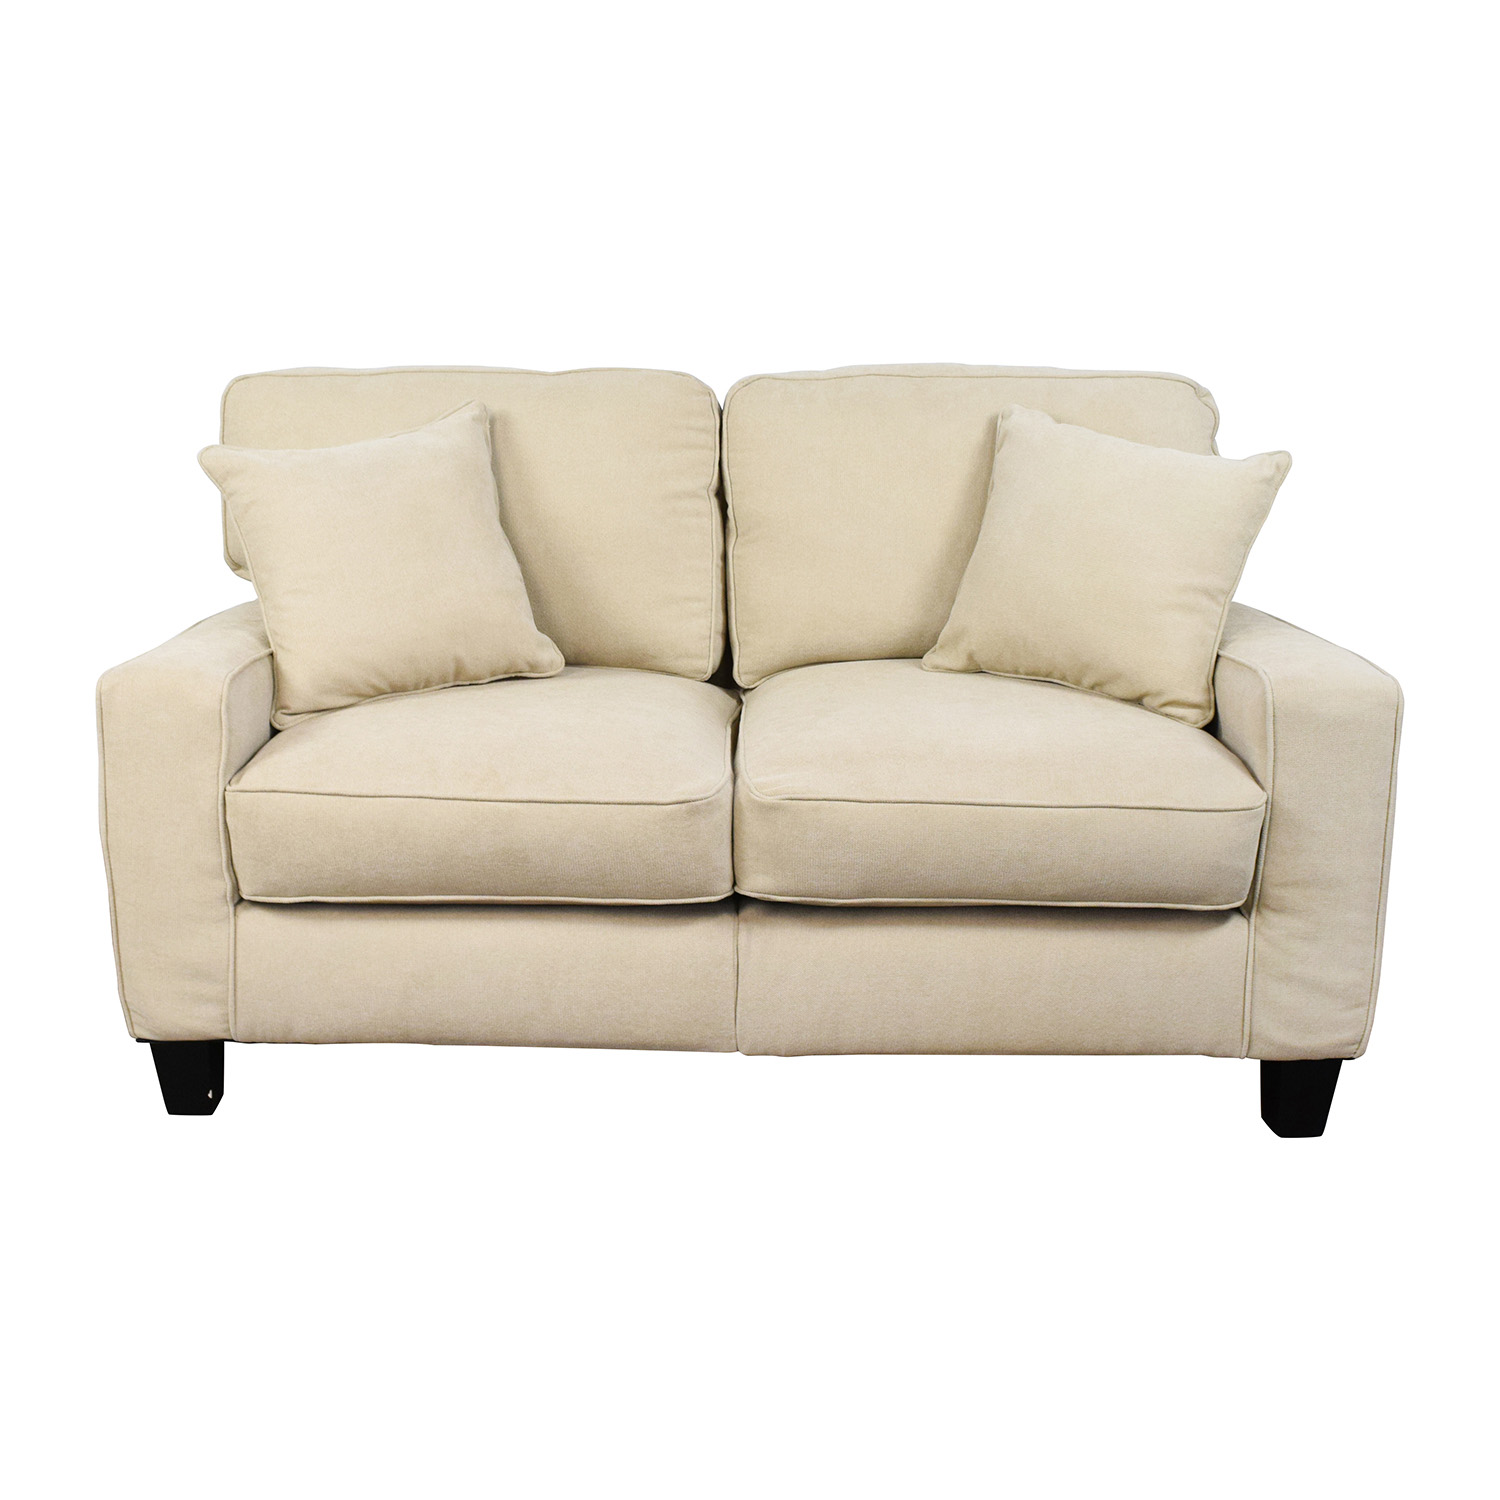 Couch And Loveseat Sale